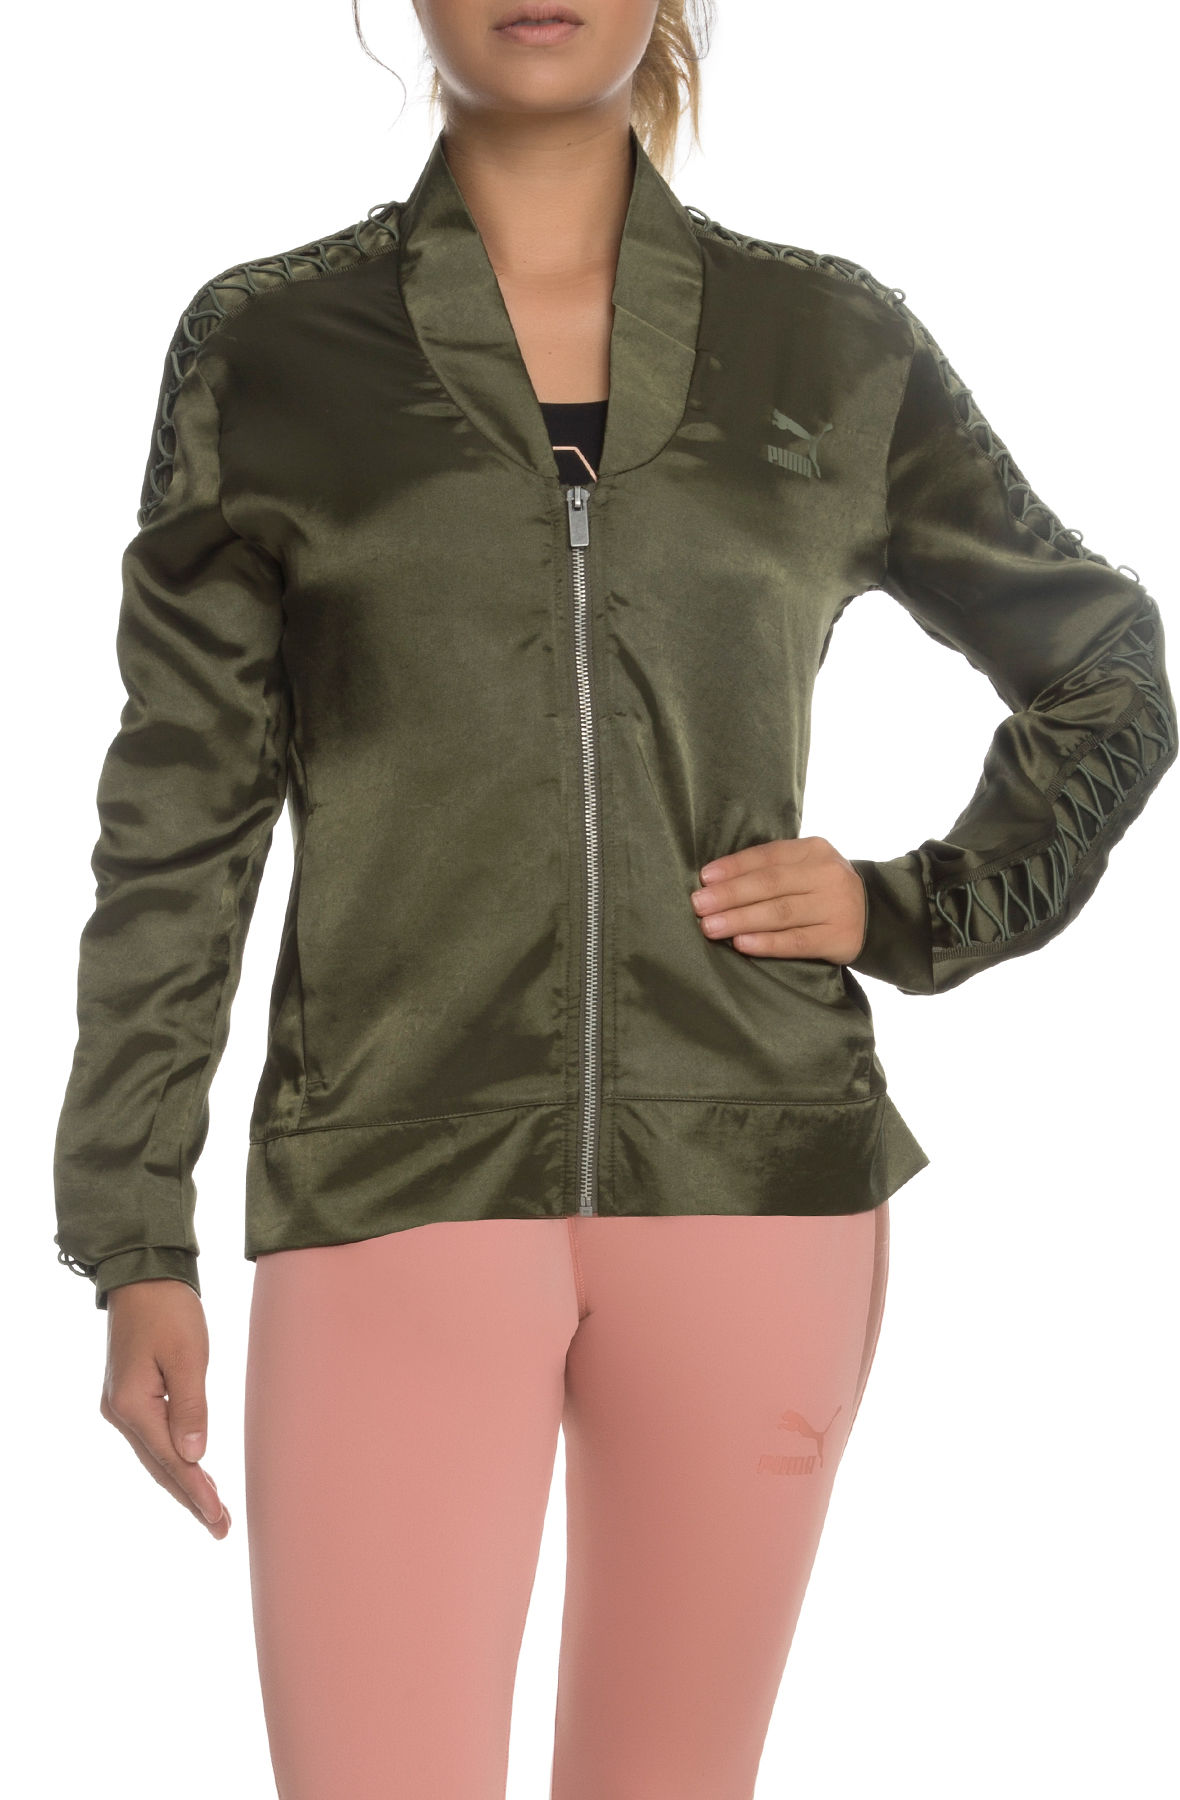 Image of The Satin Lux T7 Jacket in Olive Night